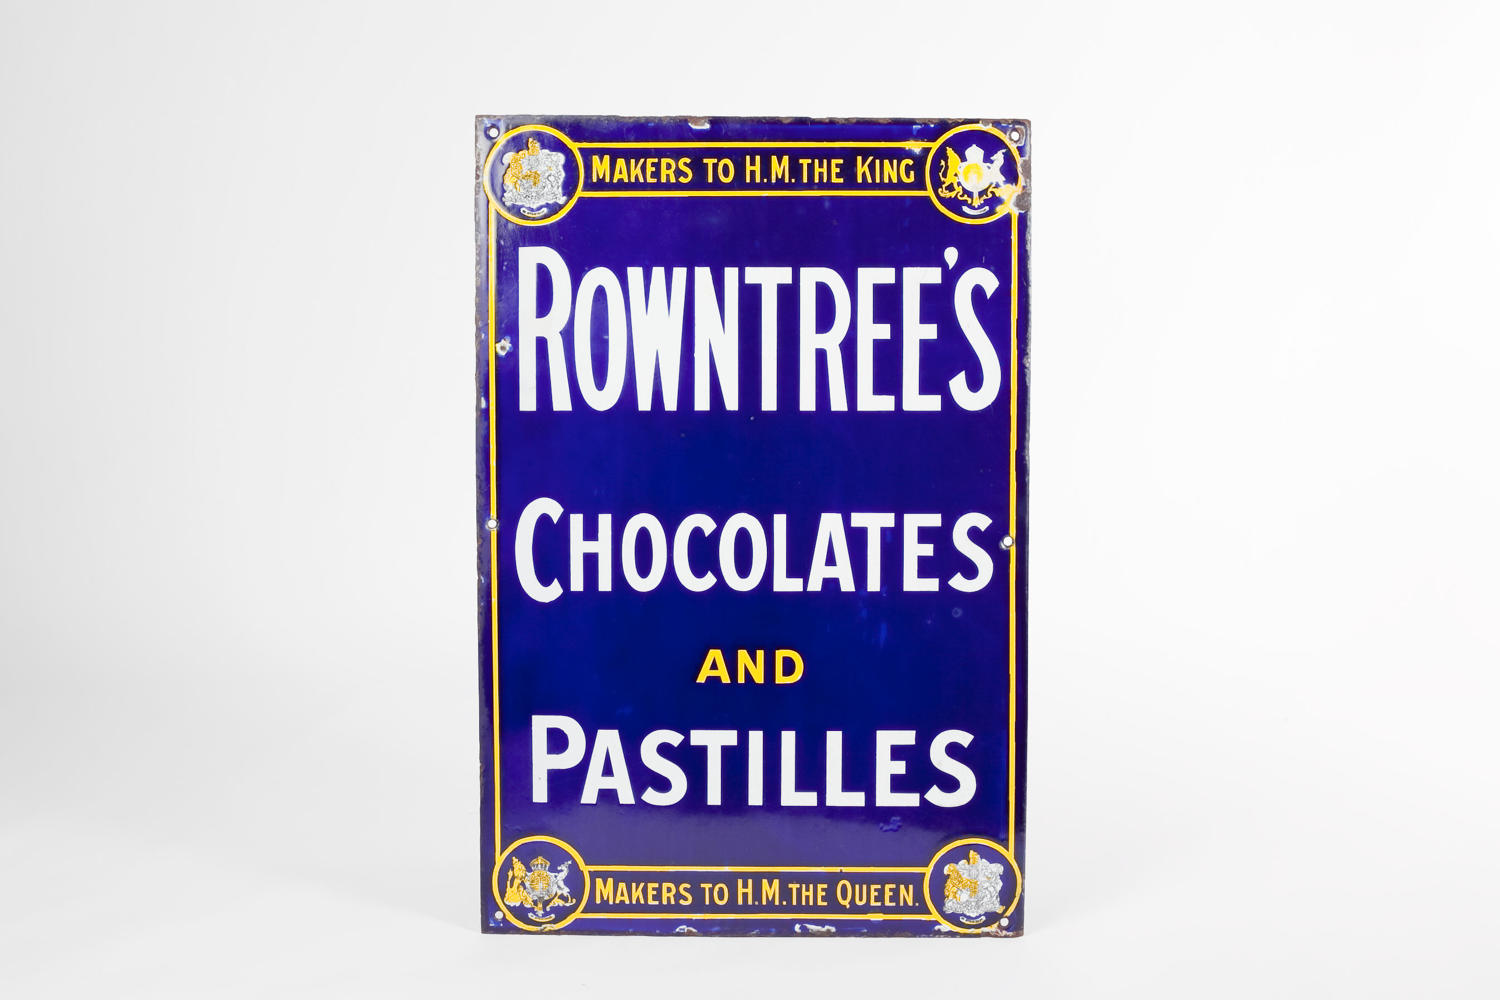 'Rowntree's Chocolates and Pastilles' enamel advertising sign